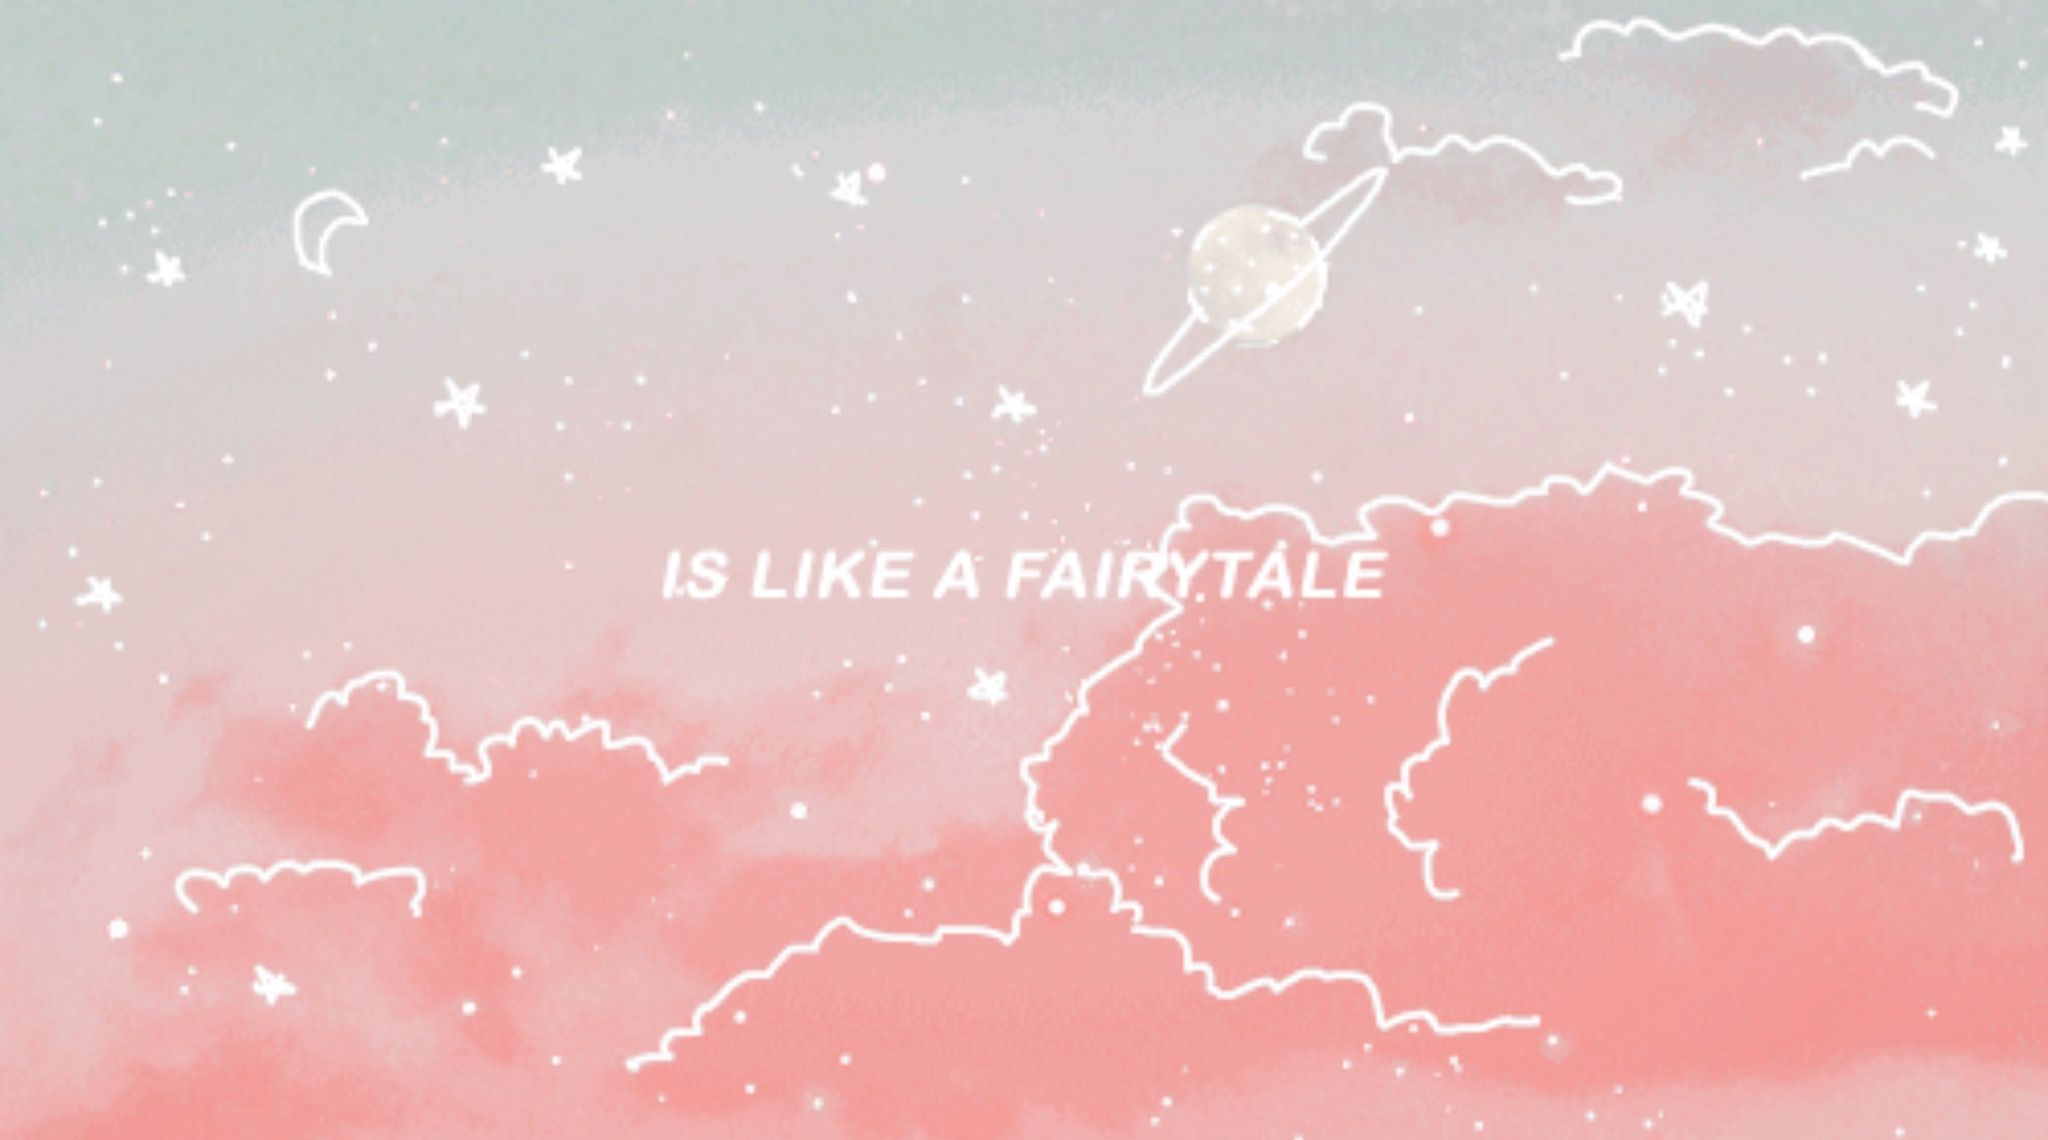 Tbh I Could Care Less In 2020 Aesthetic Desktop Wallpaper Laptop Wallpaper Computer Wallpaper Desktop Wallpapers